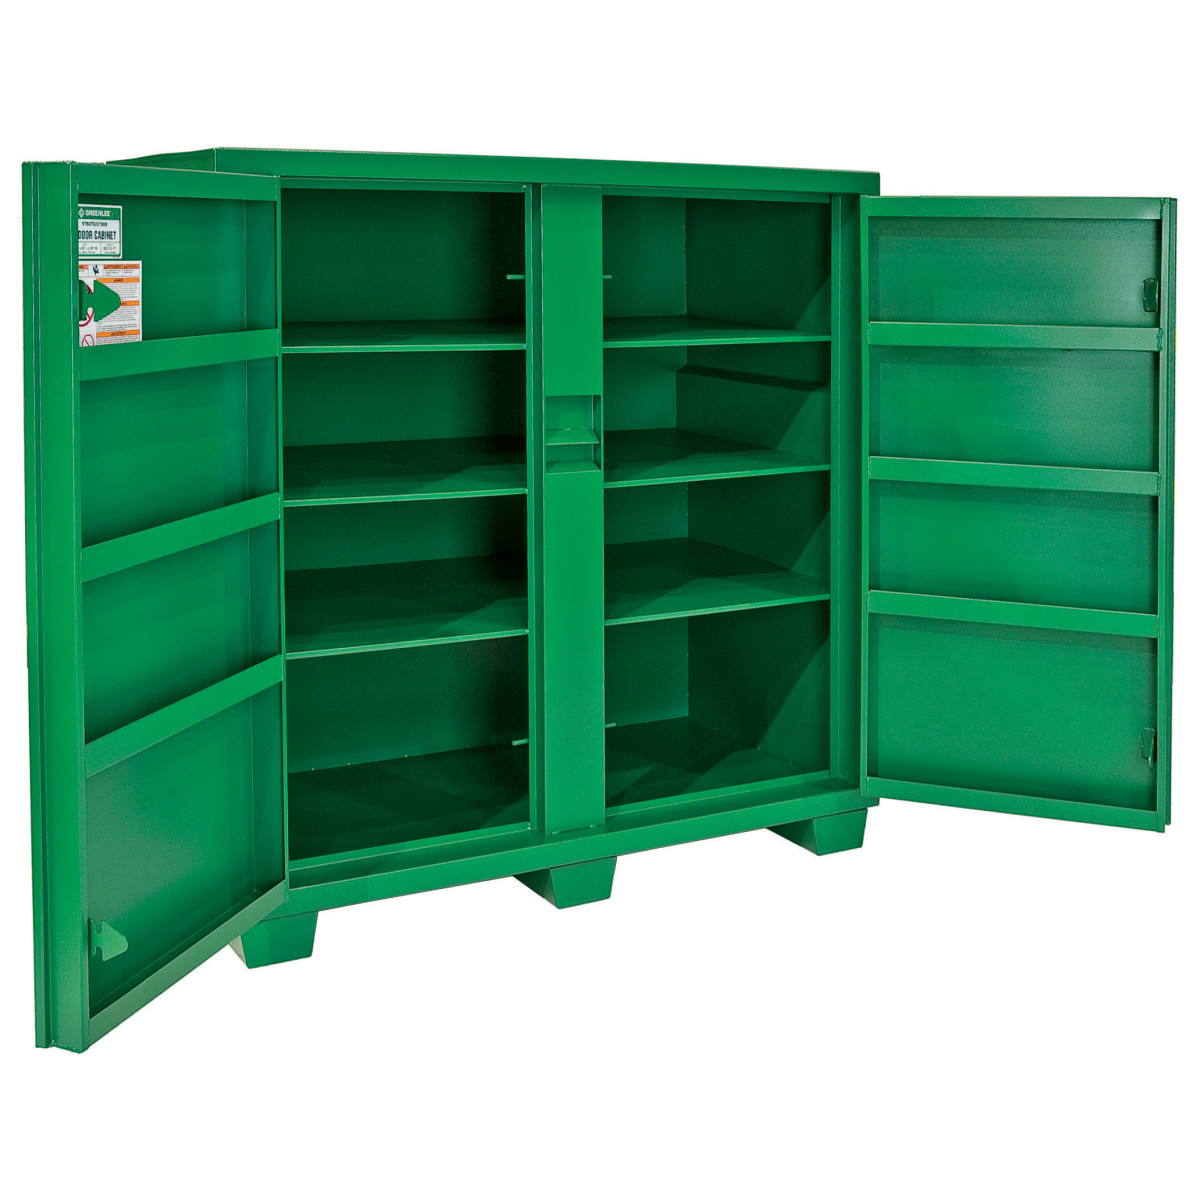 Greenlee 5760TD Box Assembly Cabinet (5760Td)